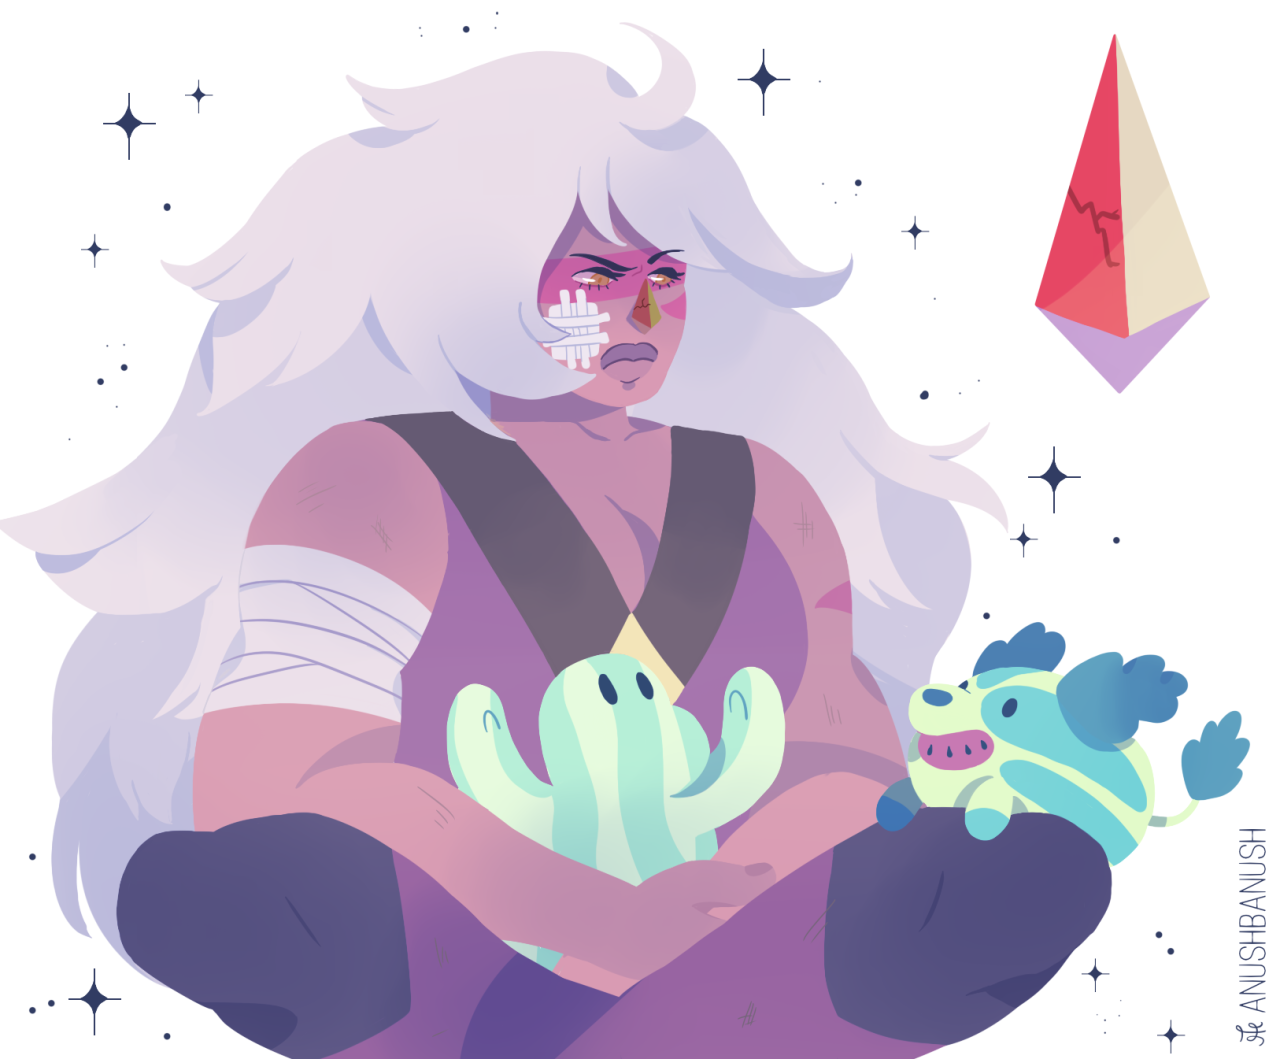 Some Jasper doodles I really hope that the watermelon stevens find her and help her out. And if it's true that her gem is cracked, I can see the watermelon stevens putting a band aid on it to cover...